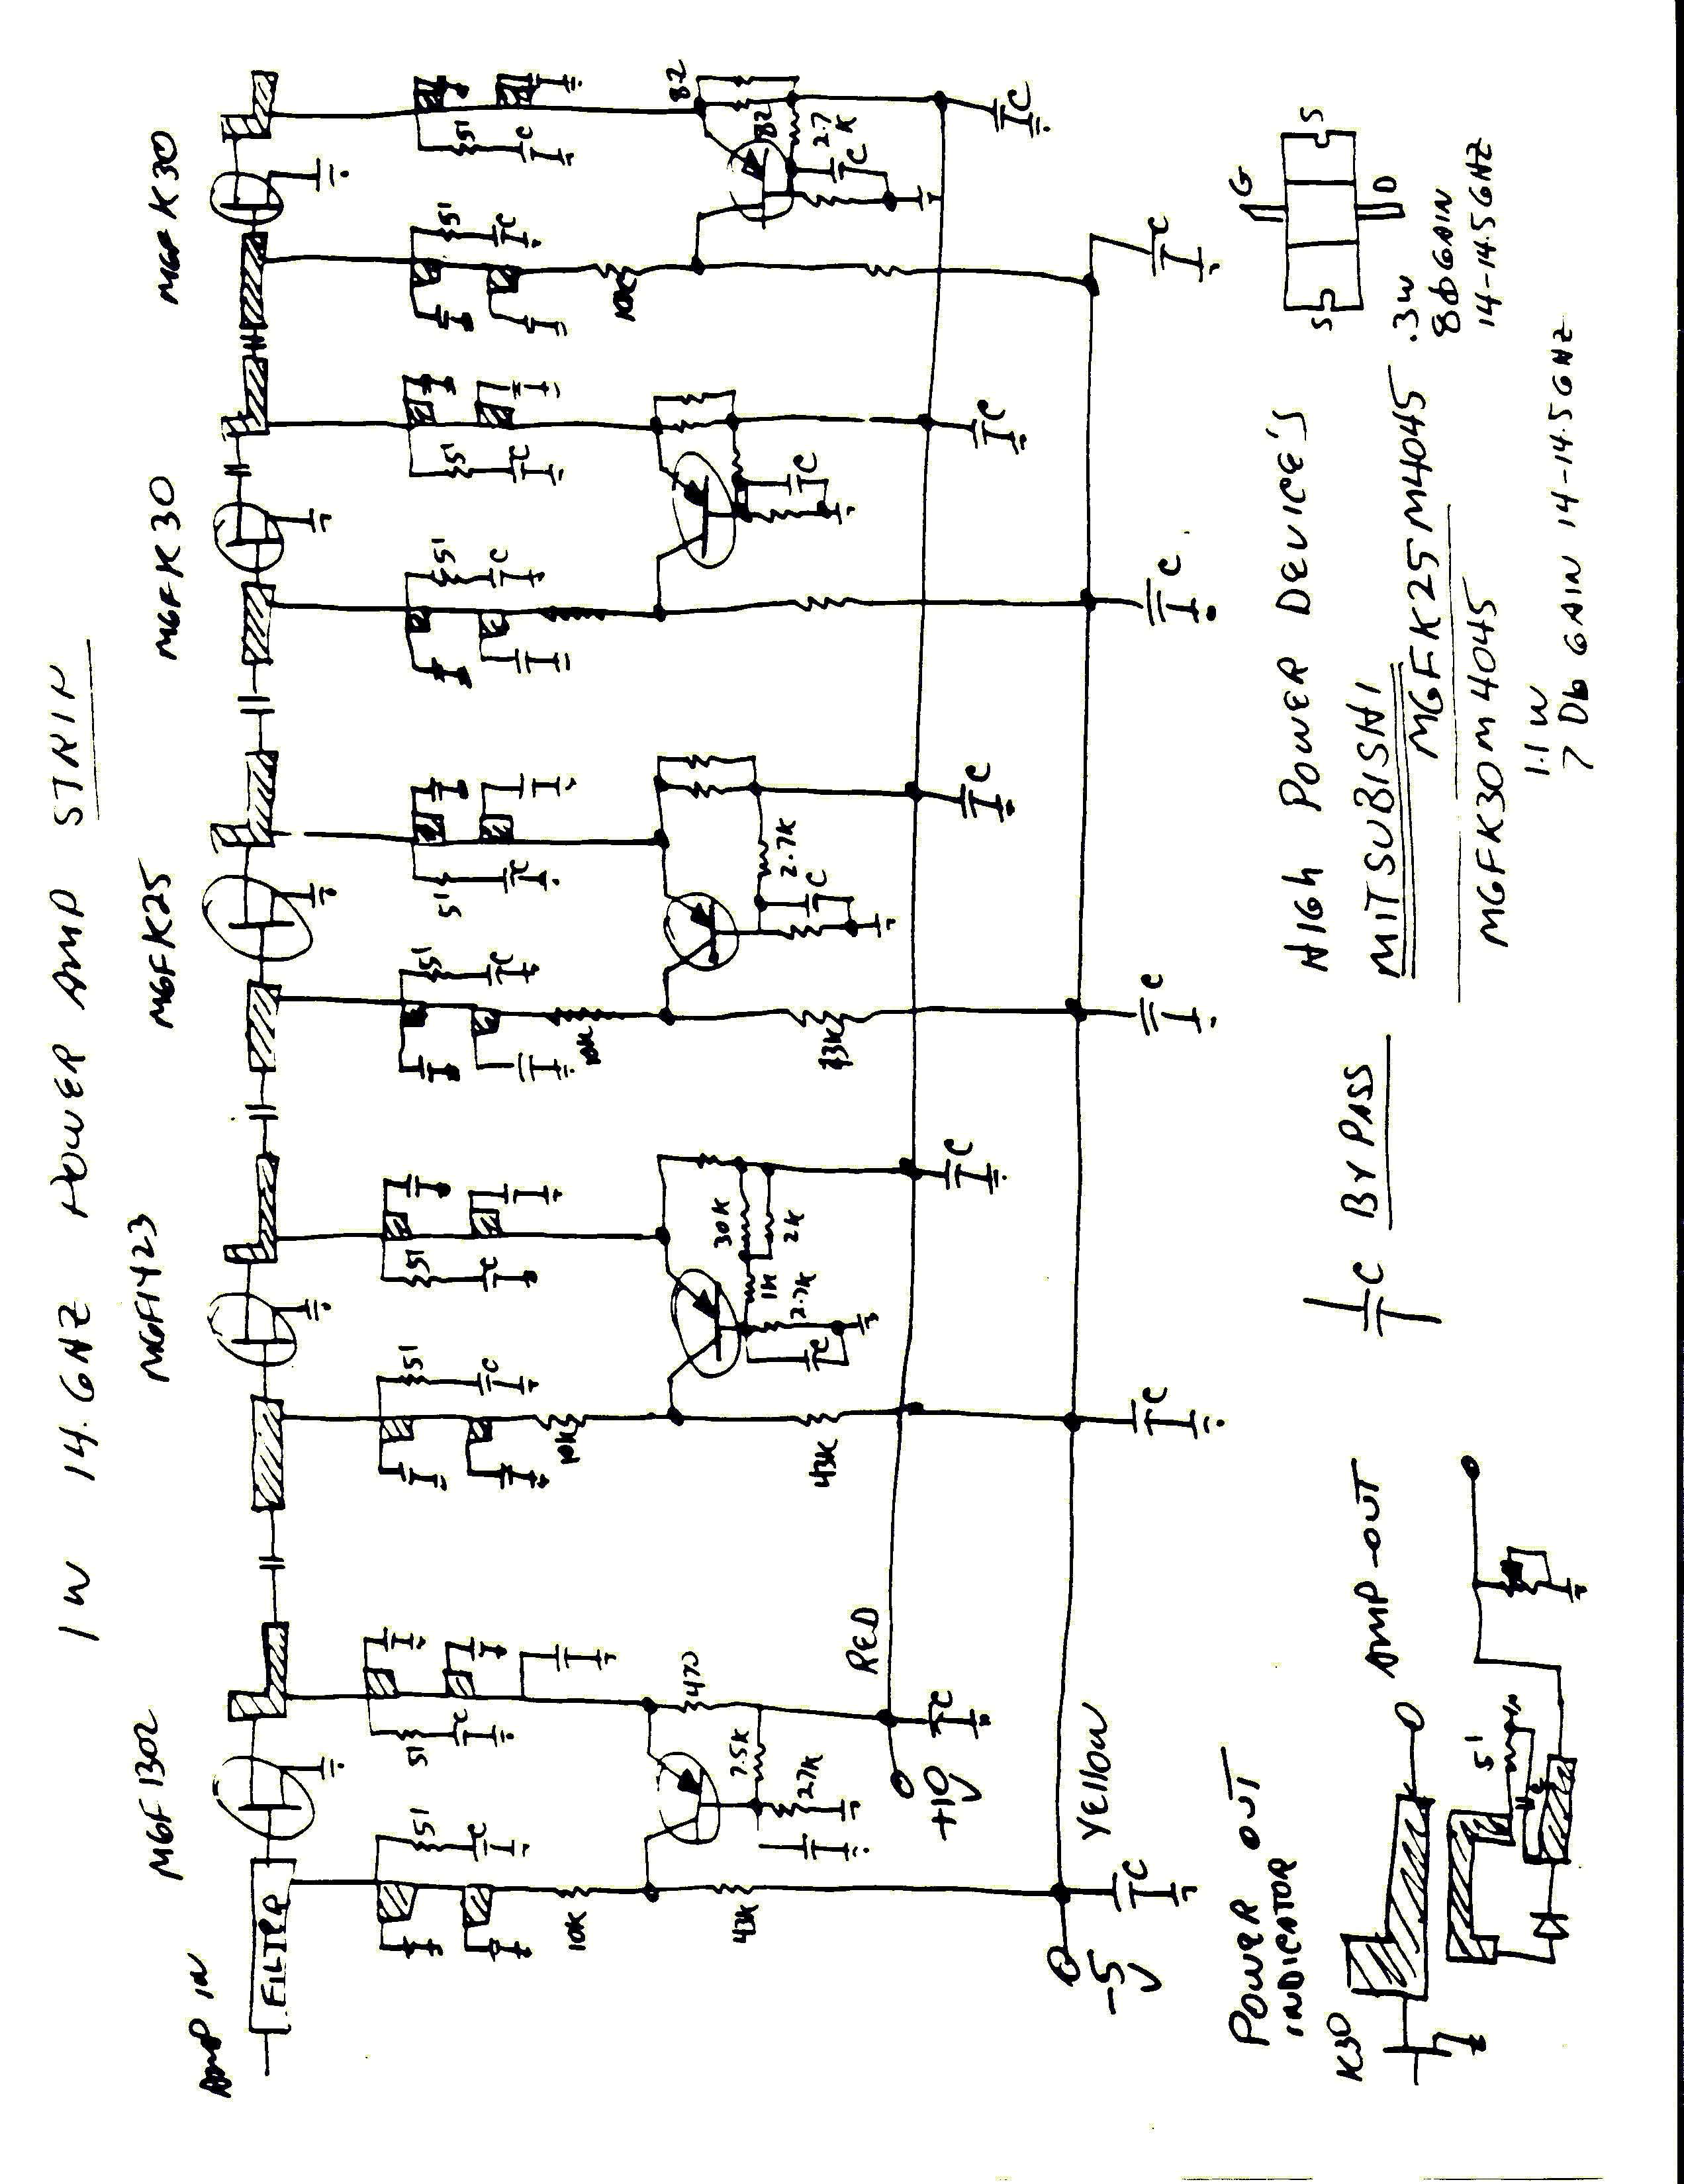 10 ghz qualcomm modifications notes